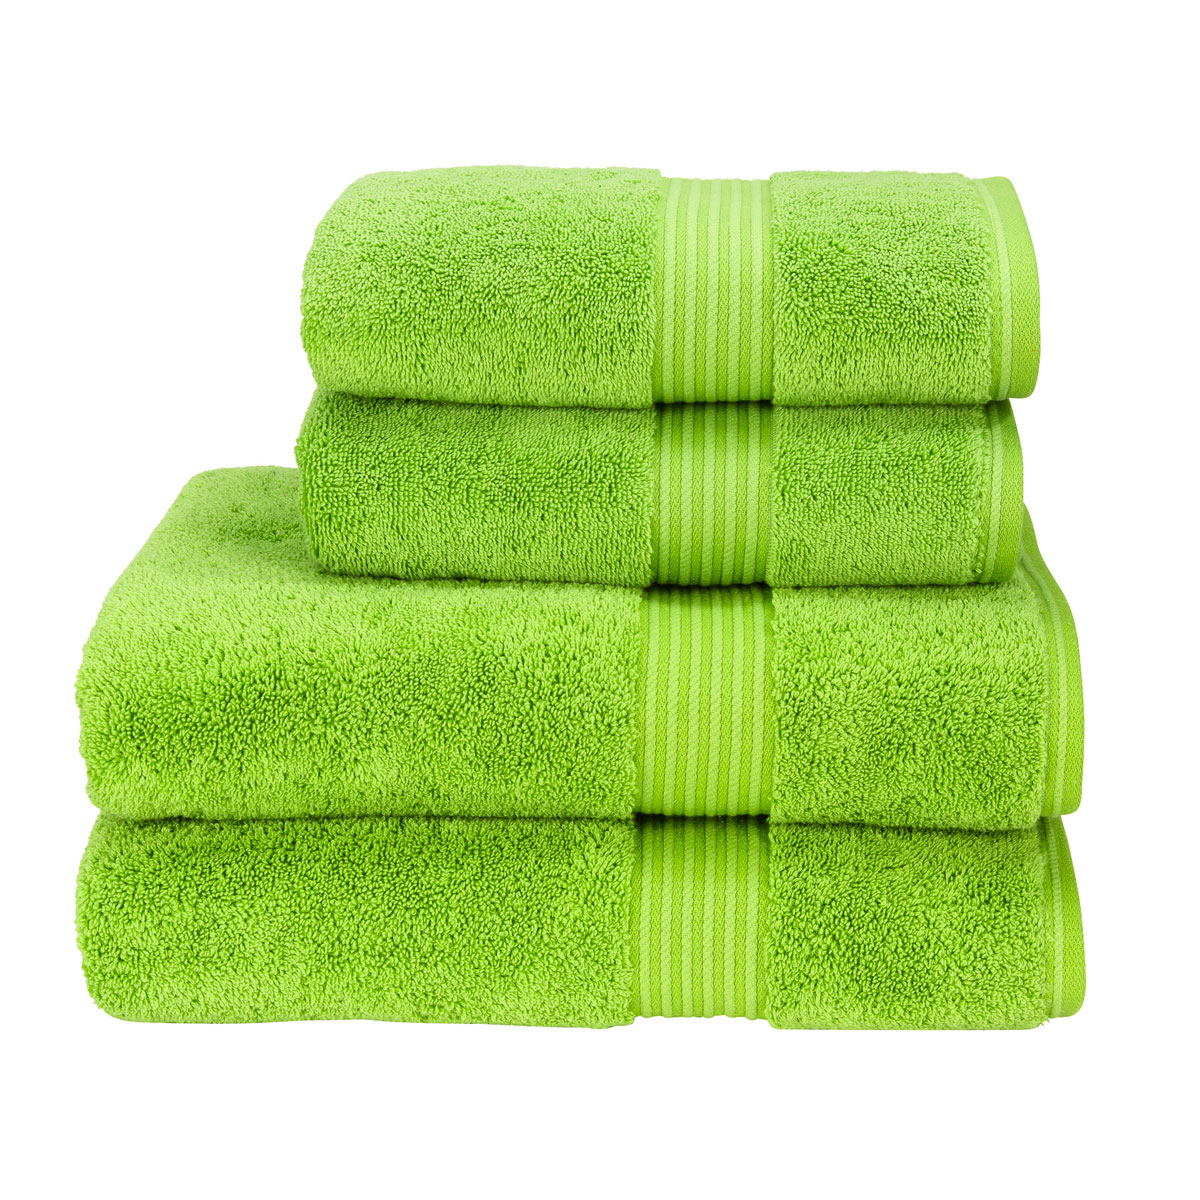 Christy Supreme Hygro Country Garden Green Towels Christy